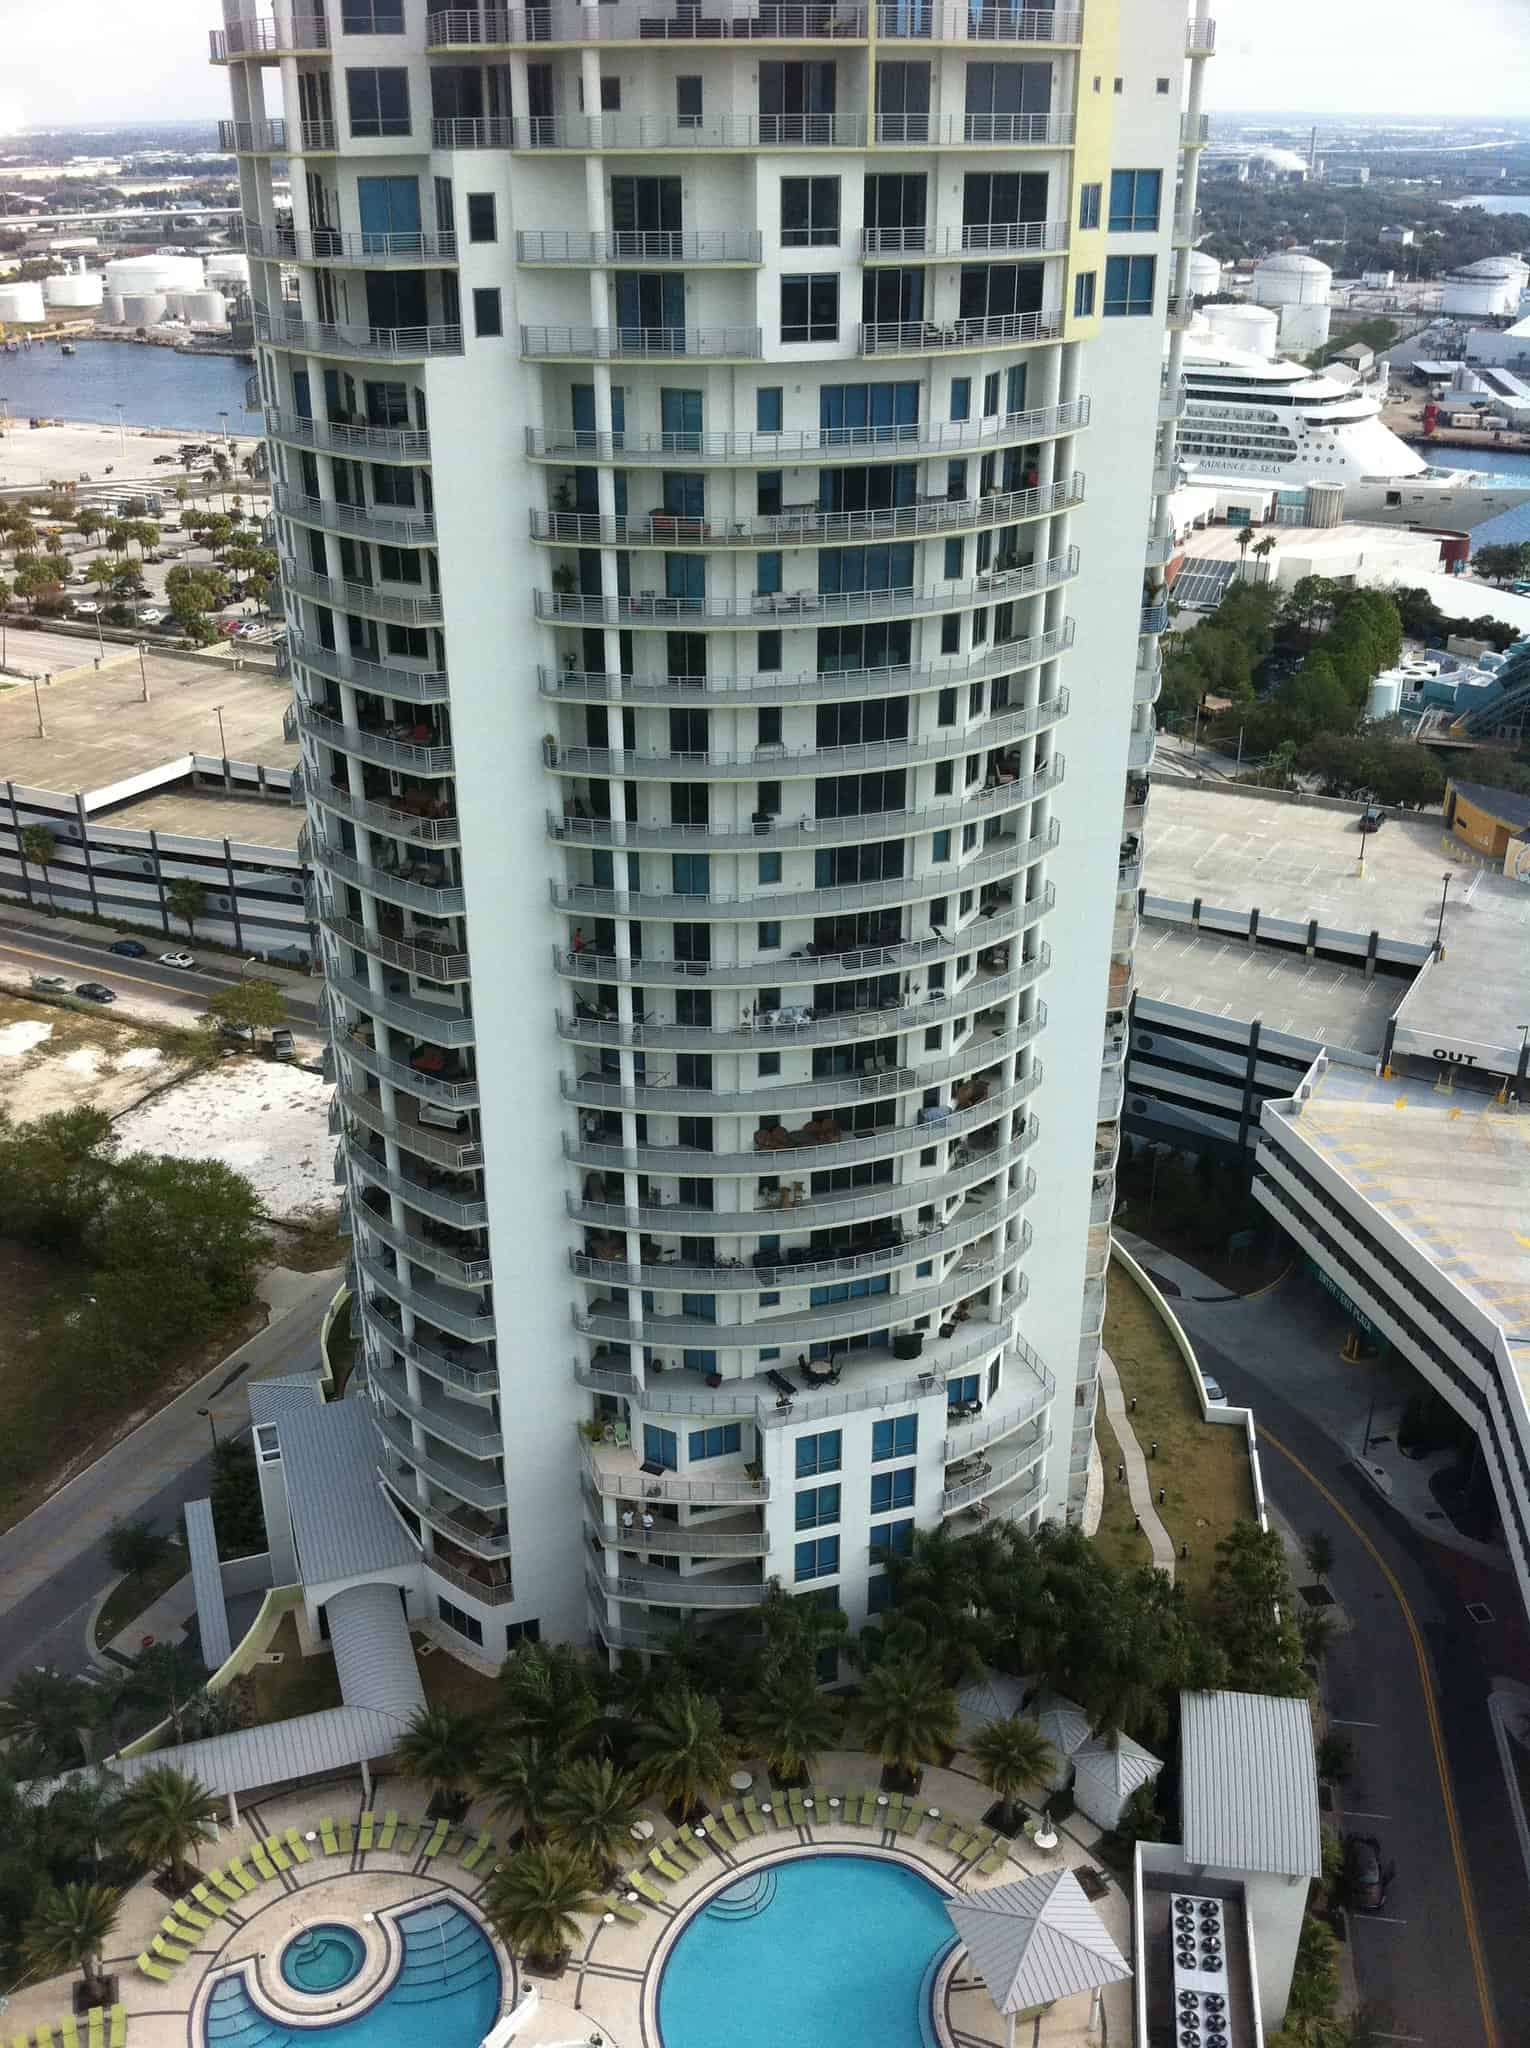 Towers of Channelside Condos- Is HOA Association Stable?-Tampa, Fl